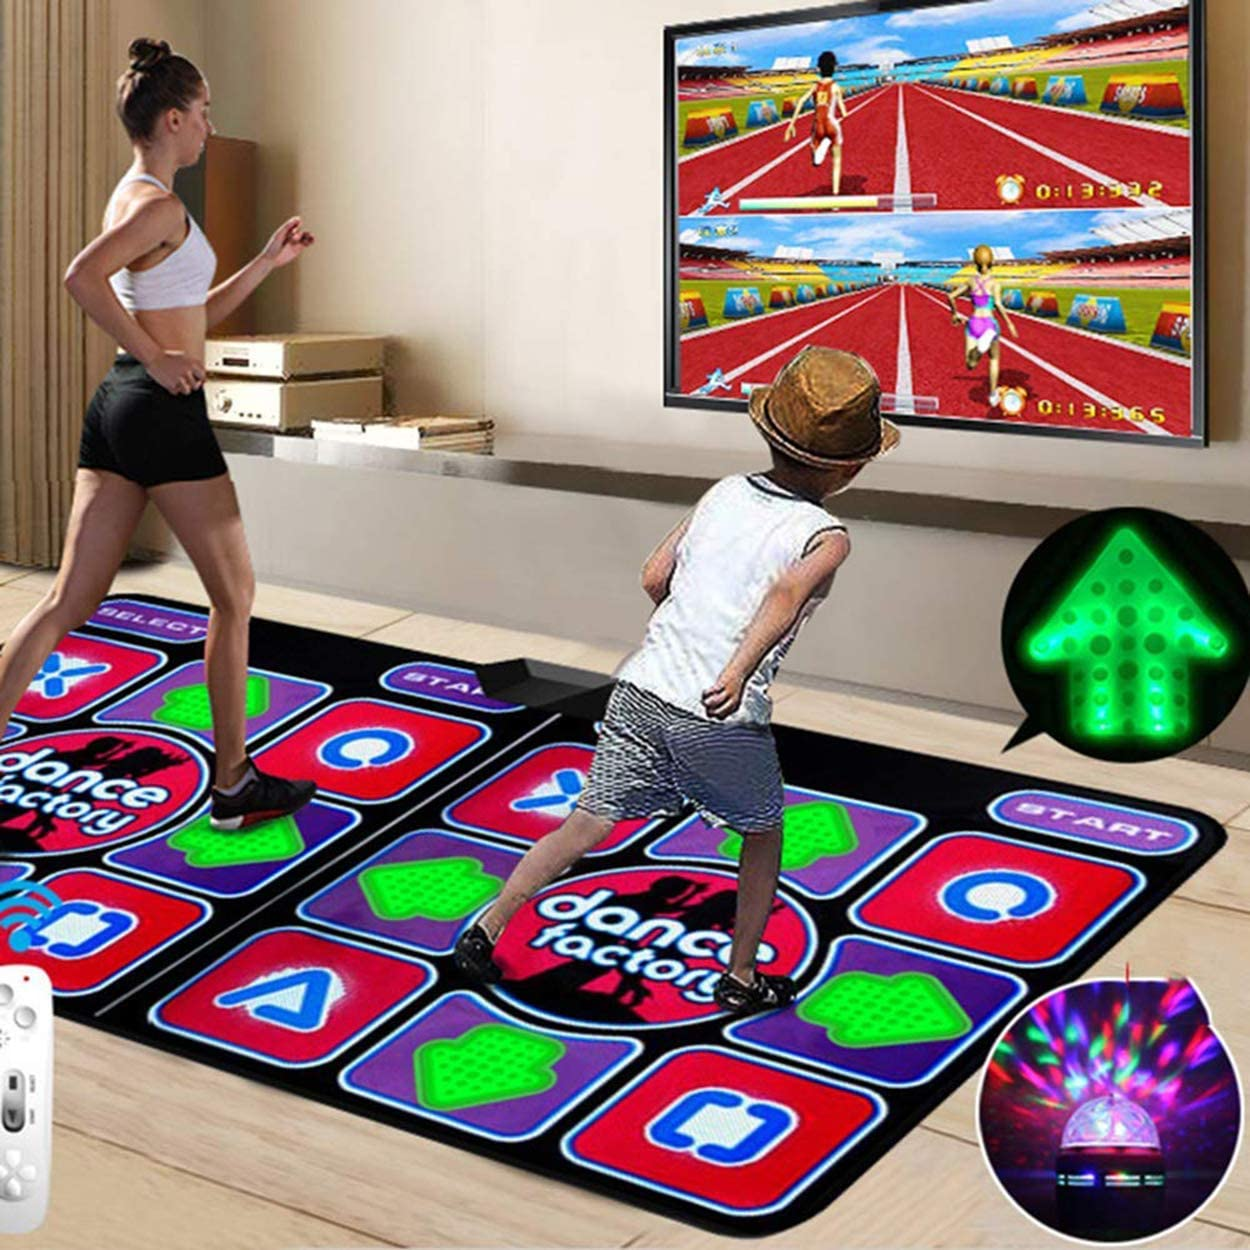 New Luminous Yoga Dance Mat Double Players For Tv Computer Interface Home Game